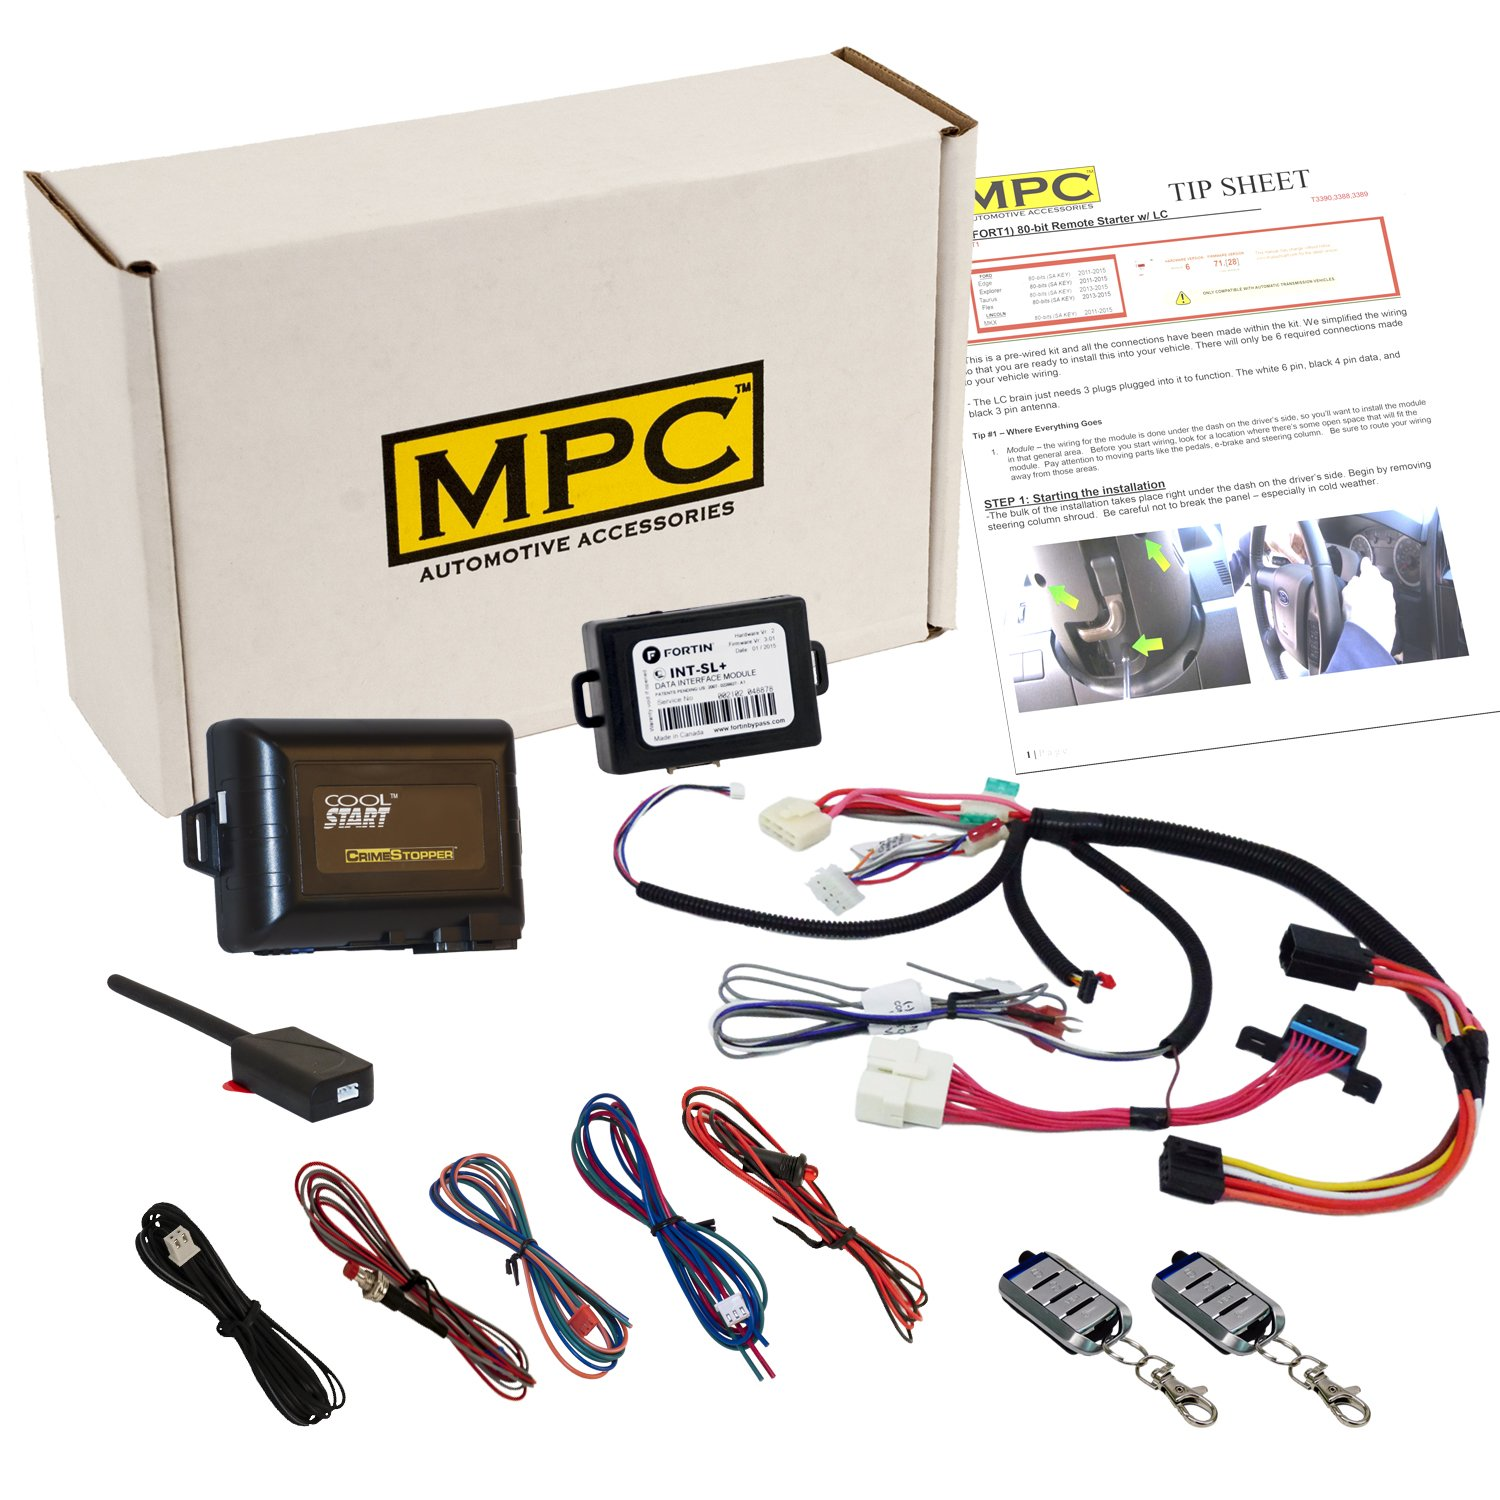 Plug Play Remote Start Keyless Entry For Sierra 2003 Gmc Yukon Denali Wiring Harness Silverado 2007 Classic This Kit Offers The Easiest Installation Available On